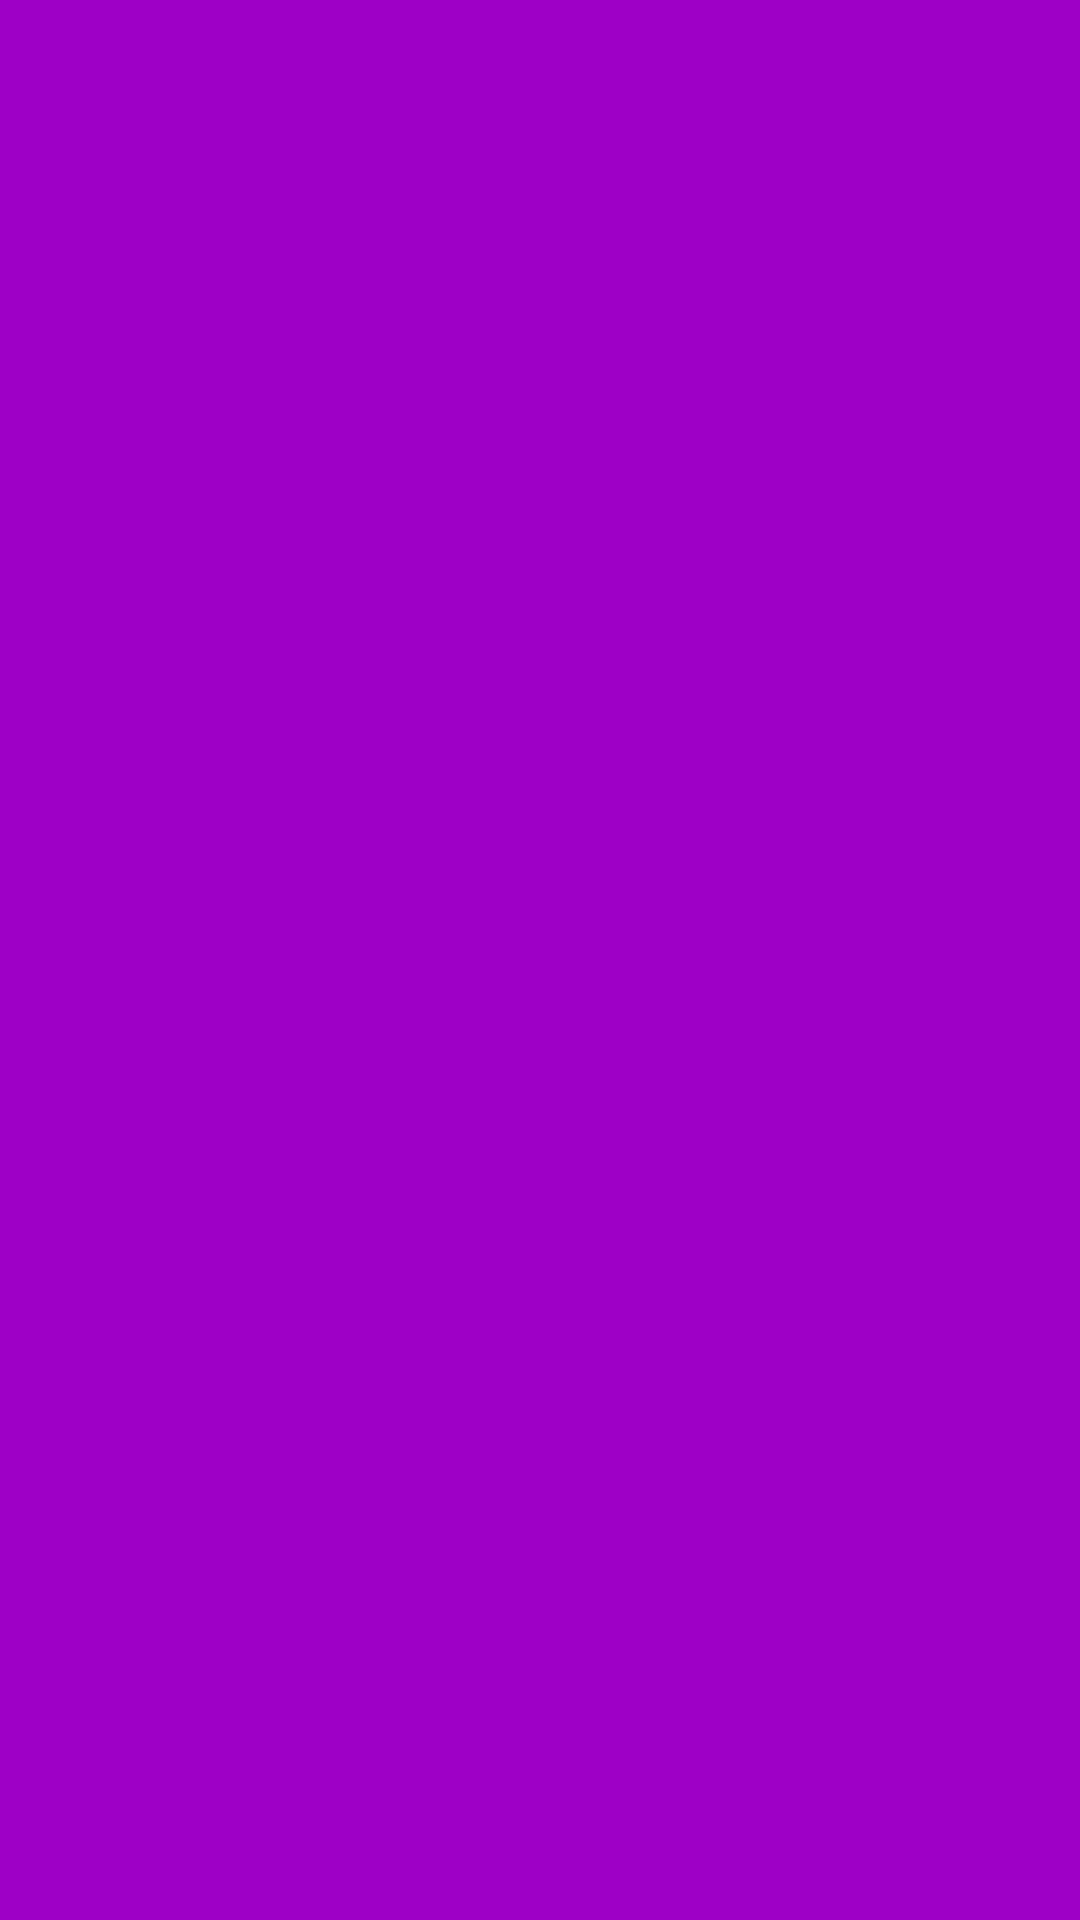 1080x1920 Purple Munsell Solid Color Background